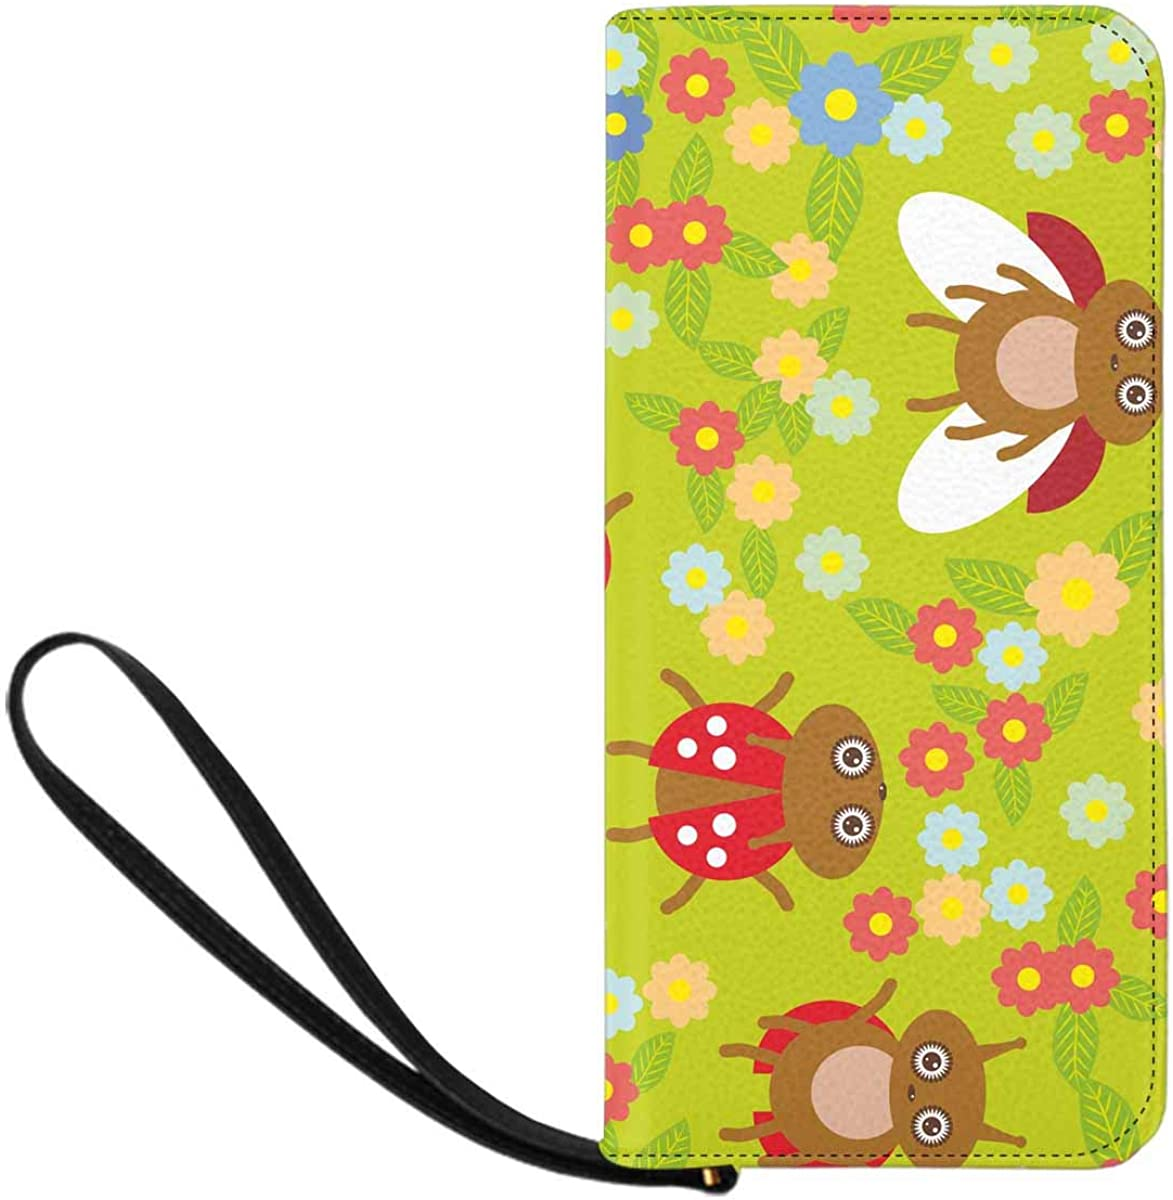 INTERESTPRINT Funny Insects Ladybugs Clutch Purse for Women Evening Party